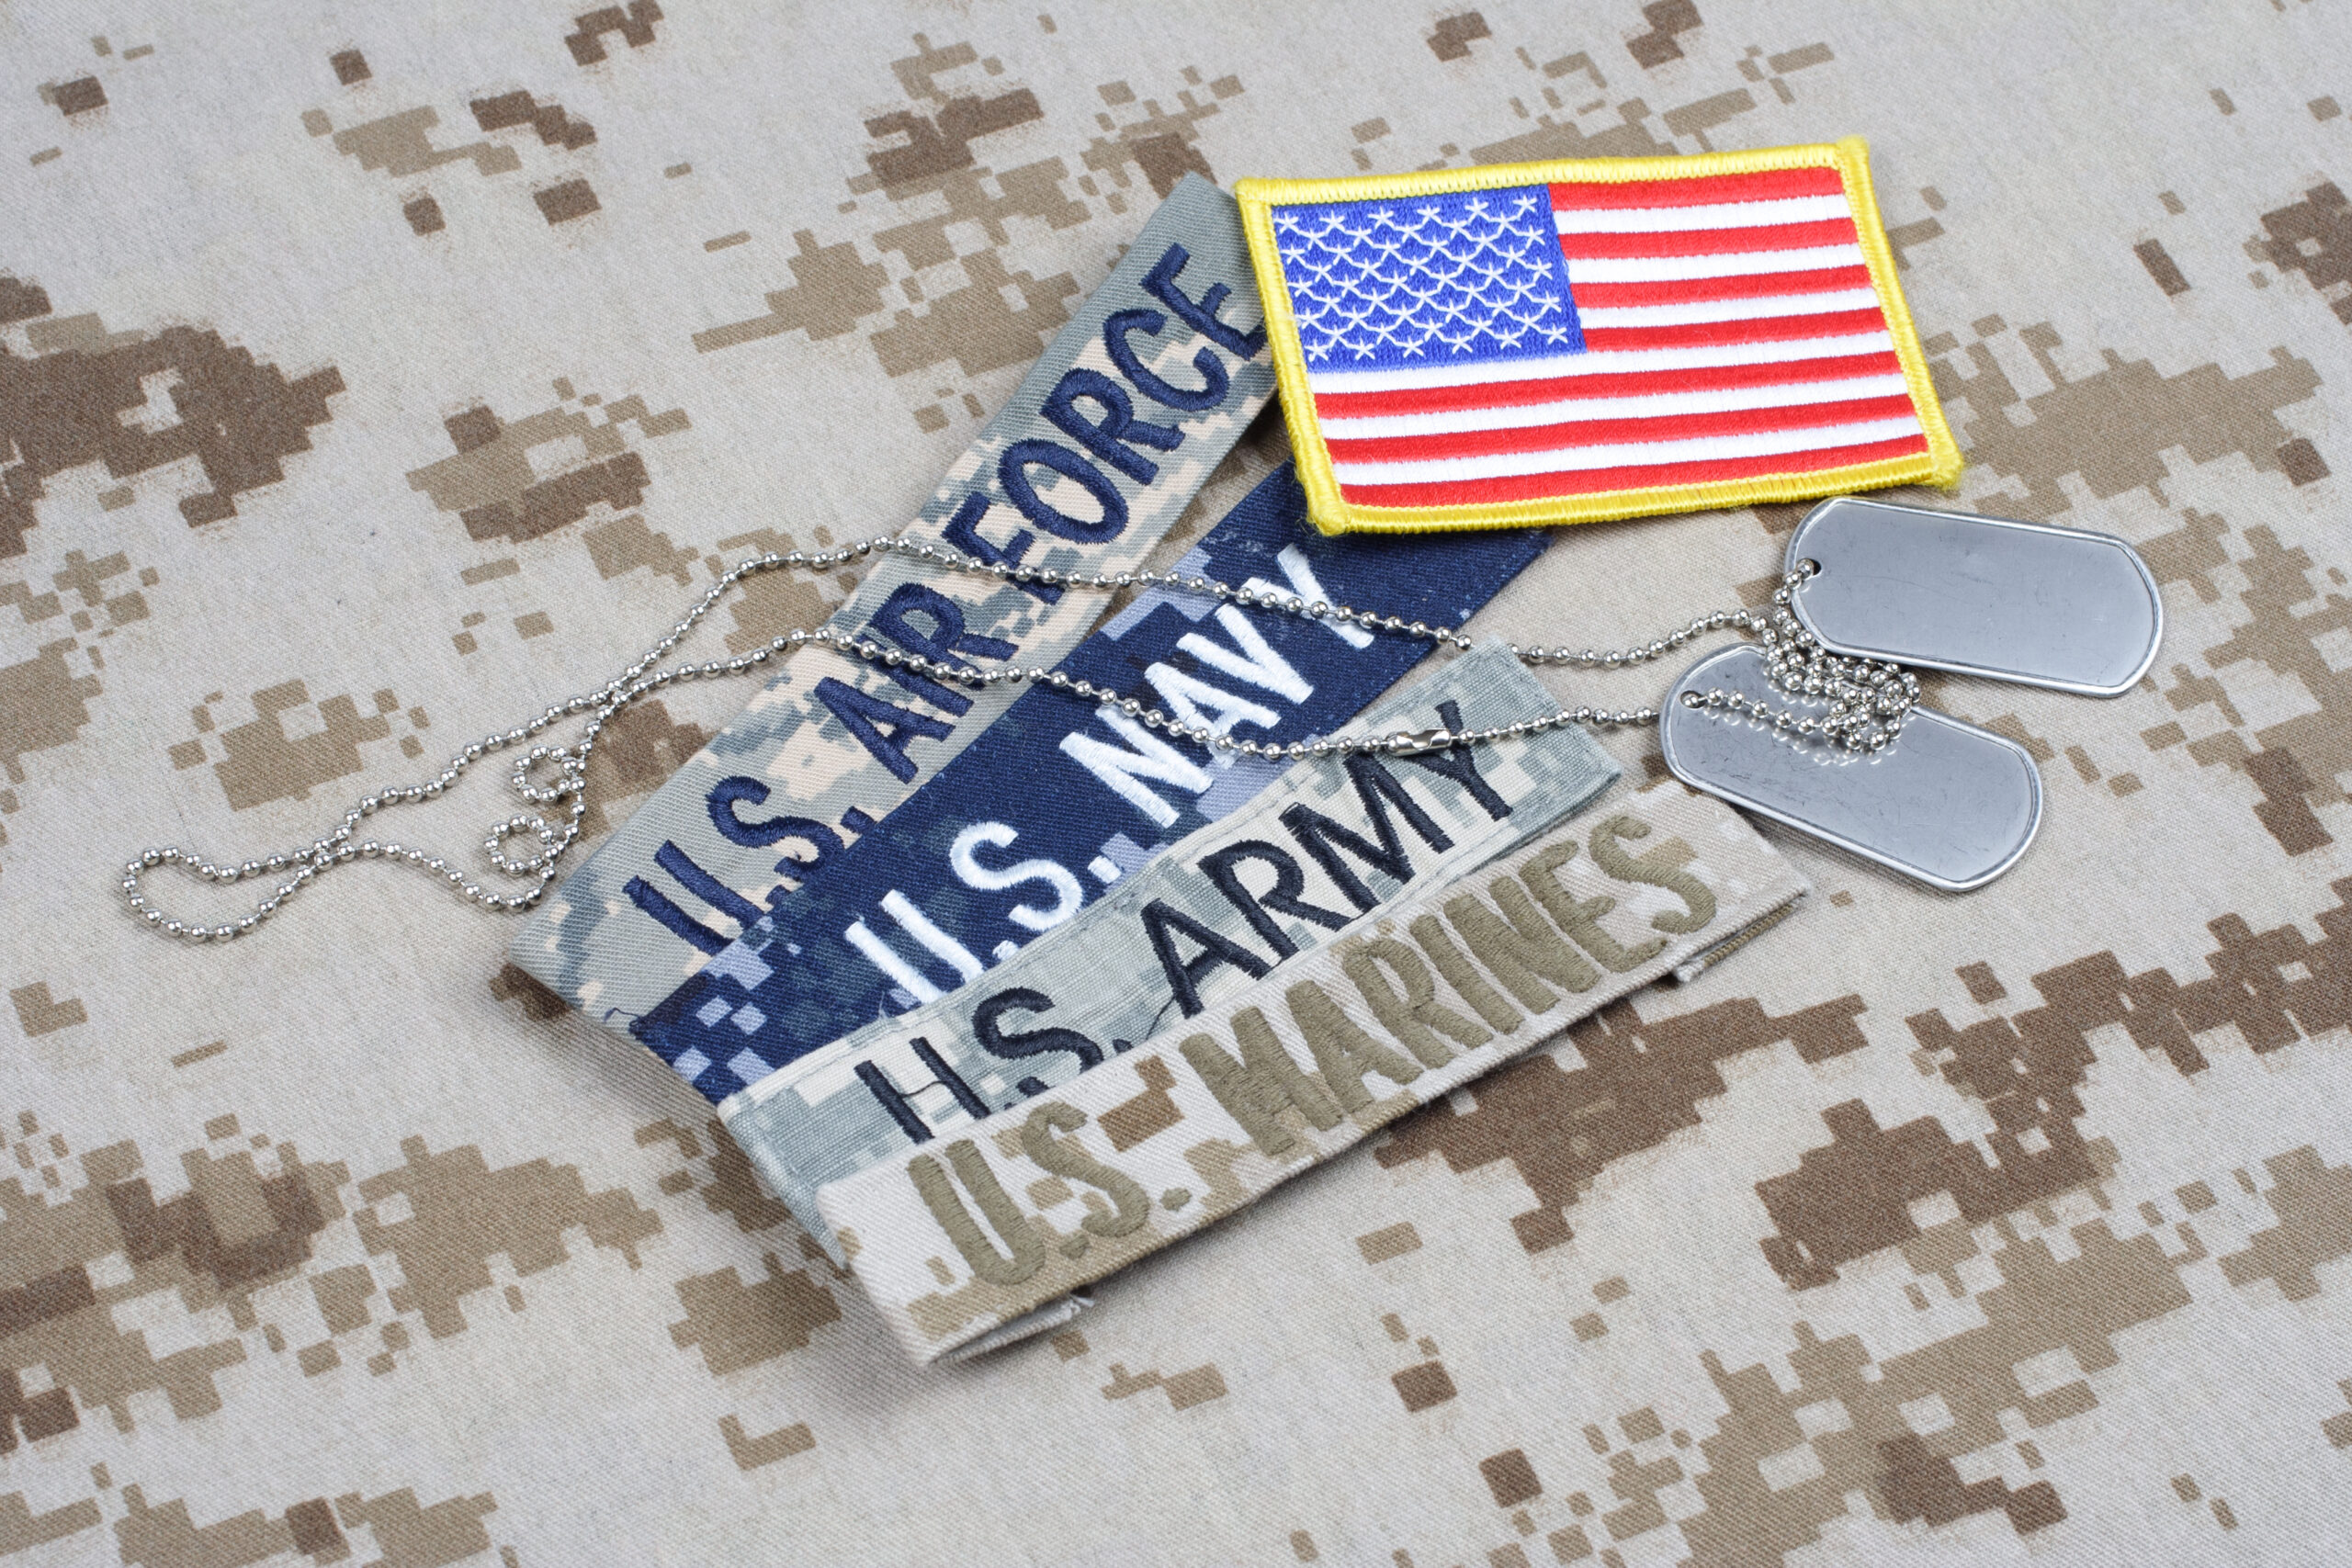 Branch tapes and dog tags on camouflage uniform